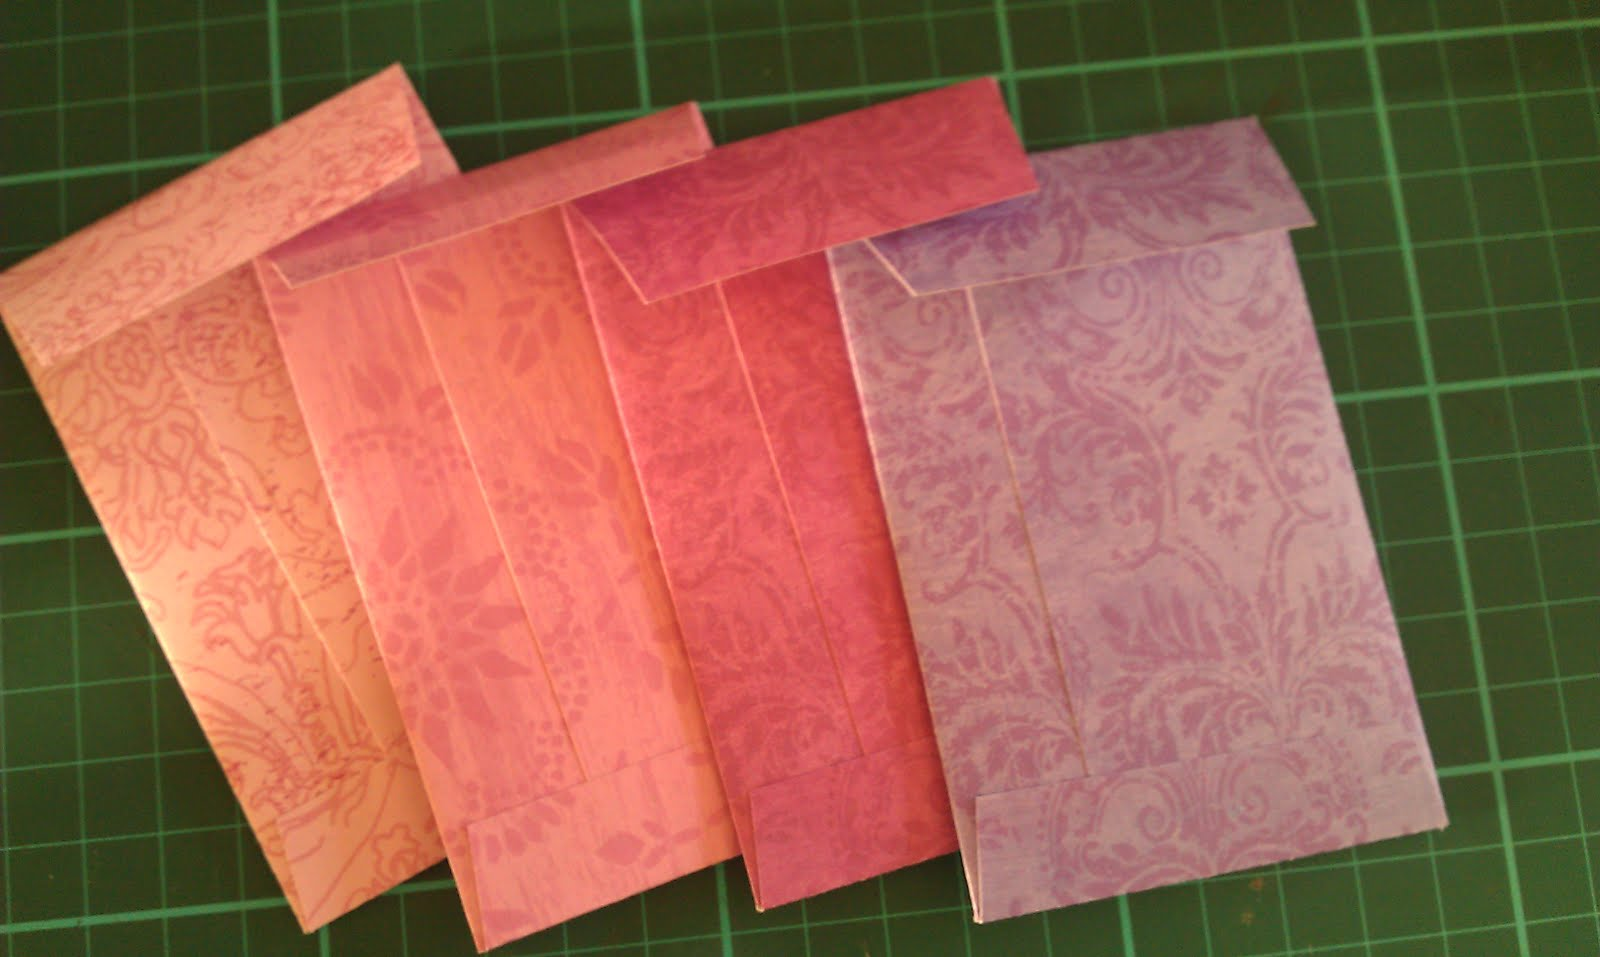 Scrapbook paper envelope template - This Is My Favourite Set Below Made Using Metallic Scrapbook Paper The Paper Has The Loveliest Texture And Feel Just The Right Weight For Envelopes